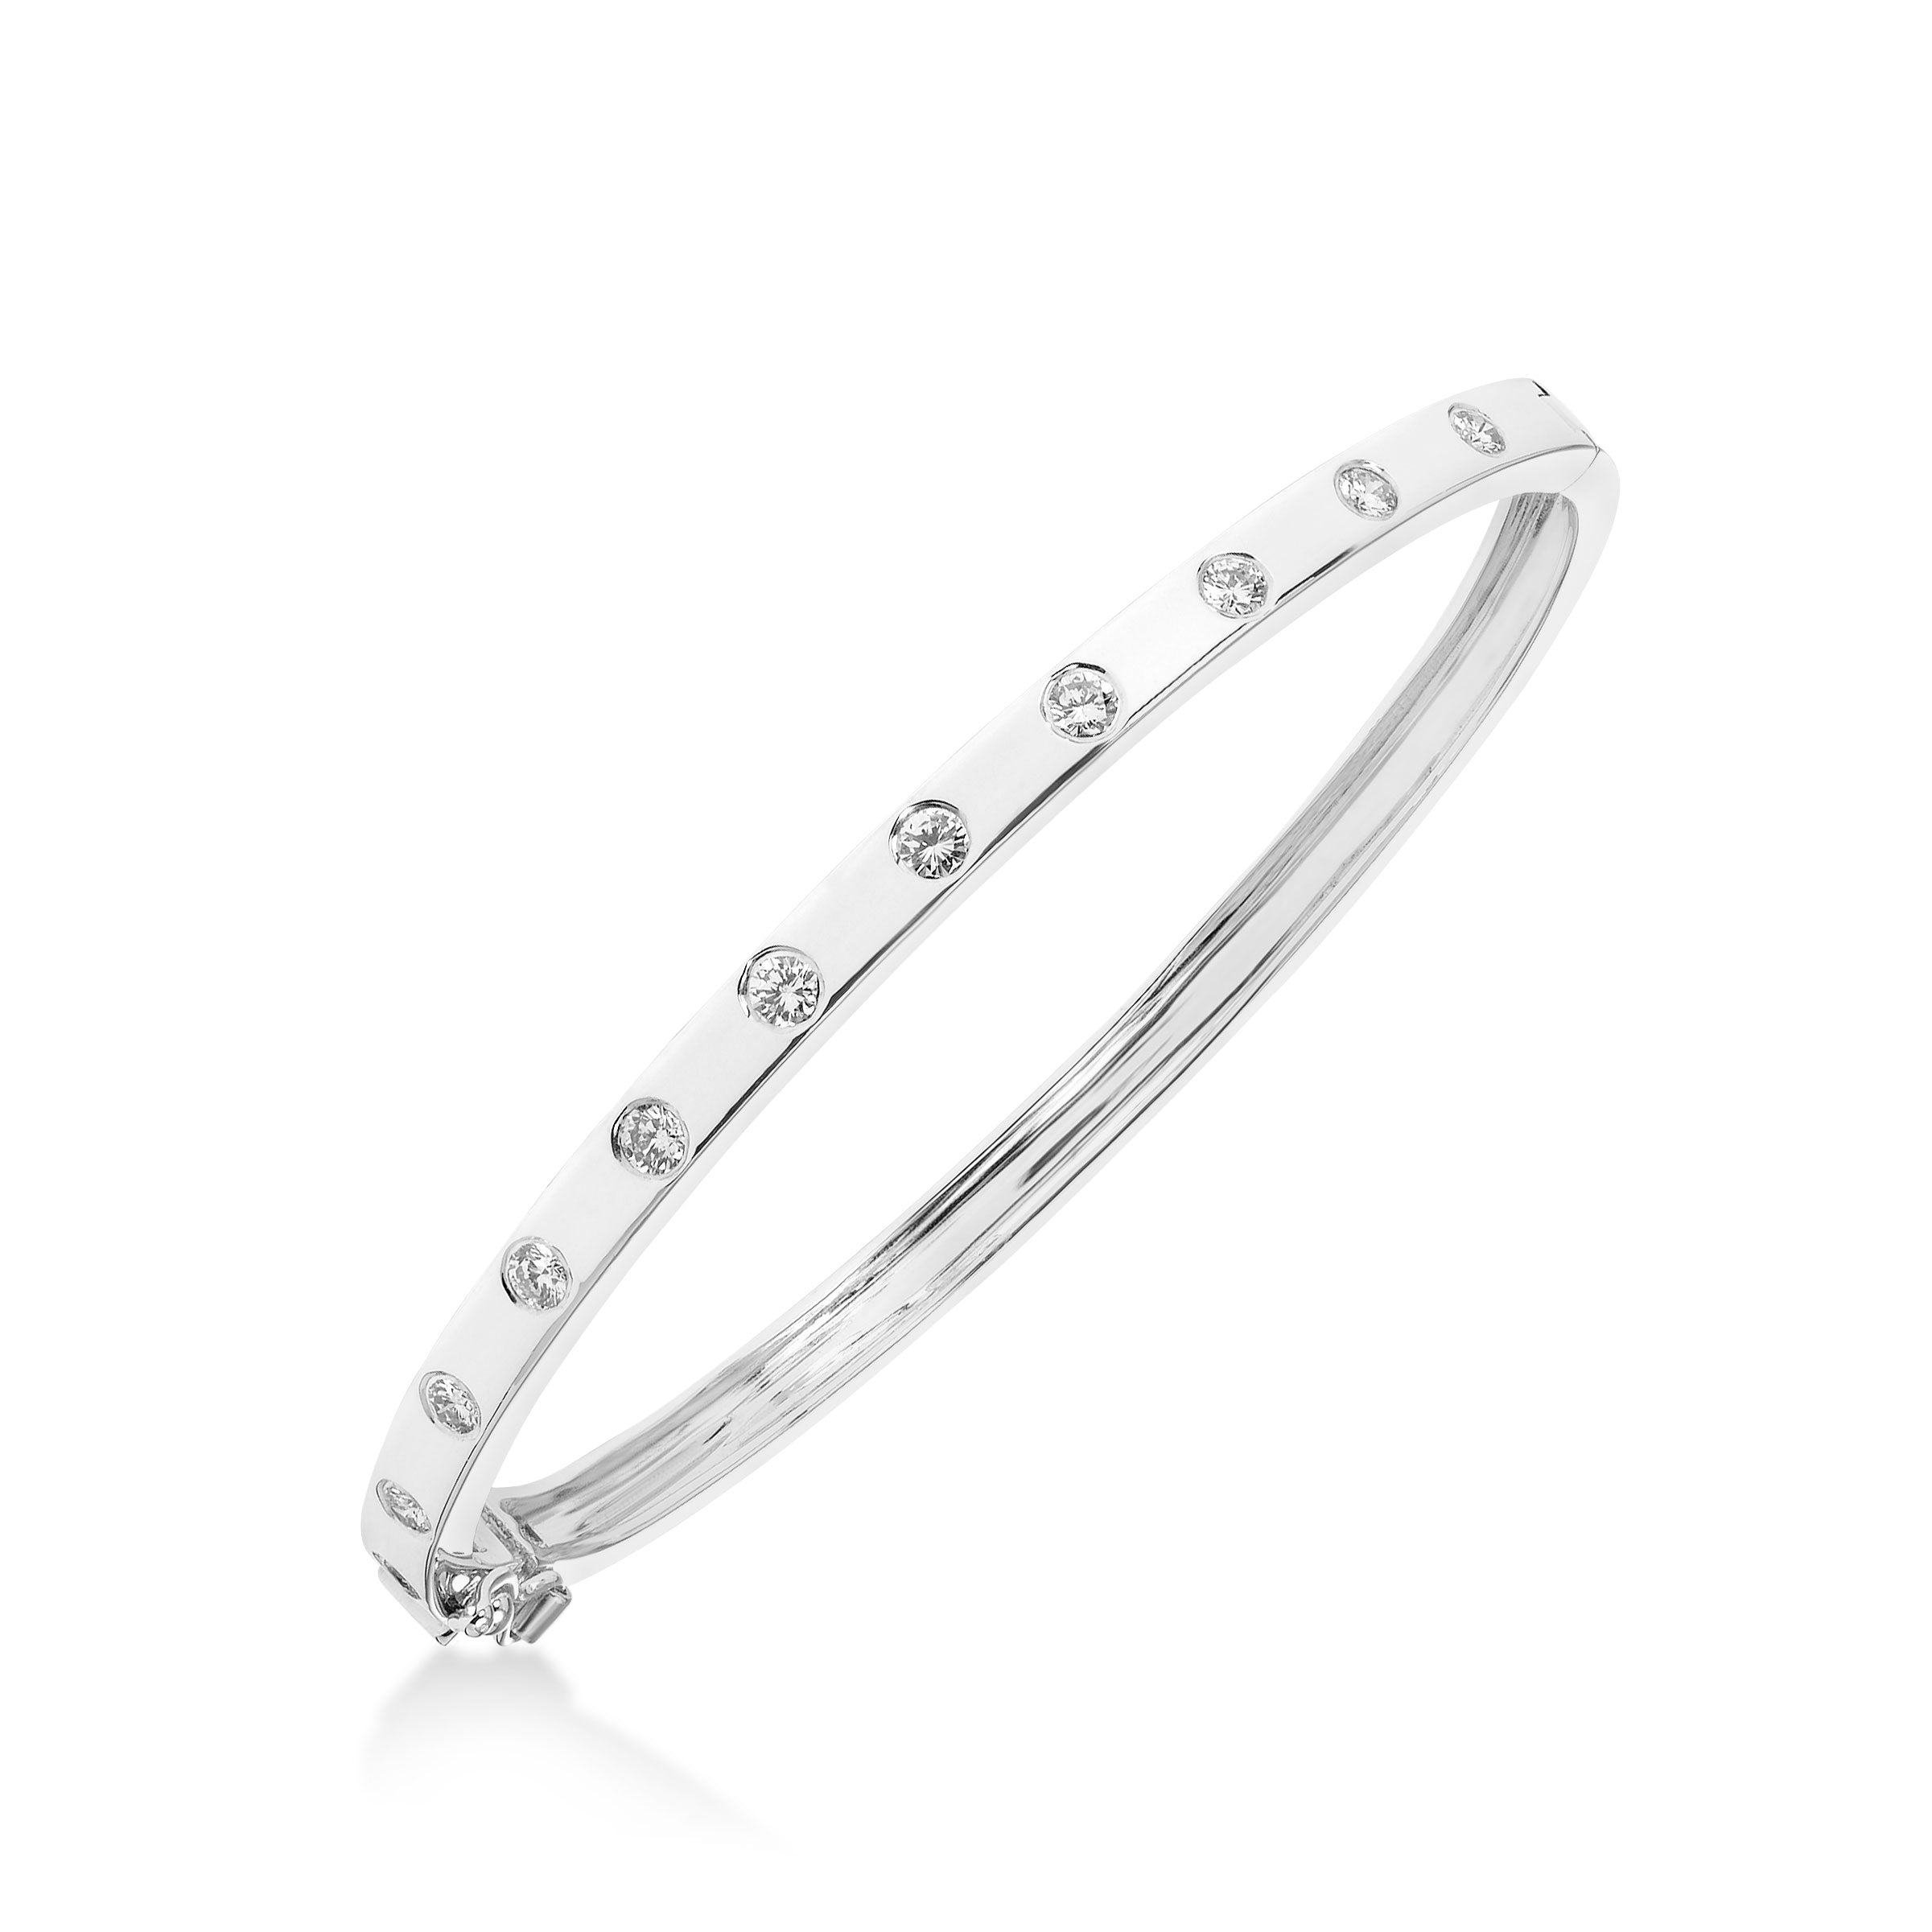 Flush Set Diamond Bangle Bracelet, 14K White Gold